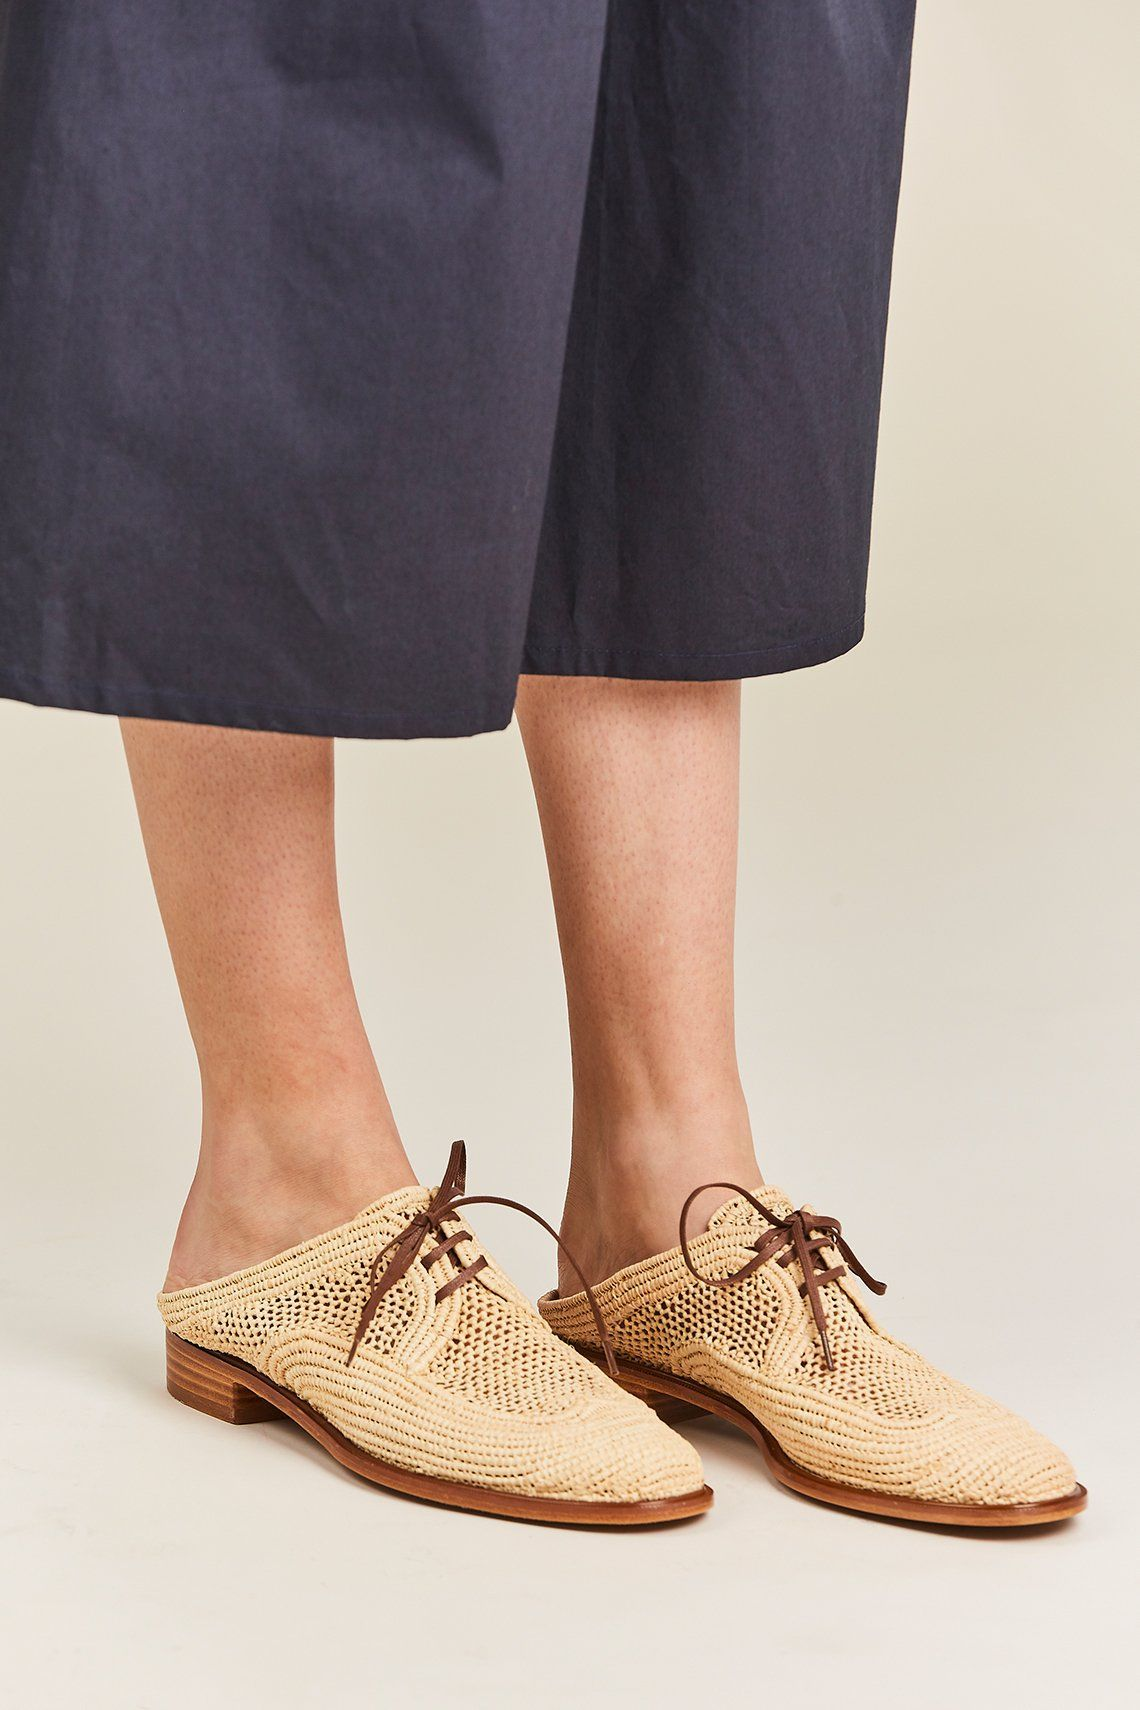 069b850de67fd Hand-woven natural rafia mules with a oxford inspired silhouette. Round  toe